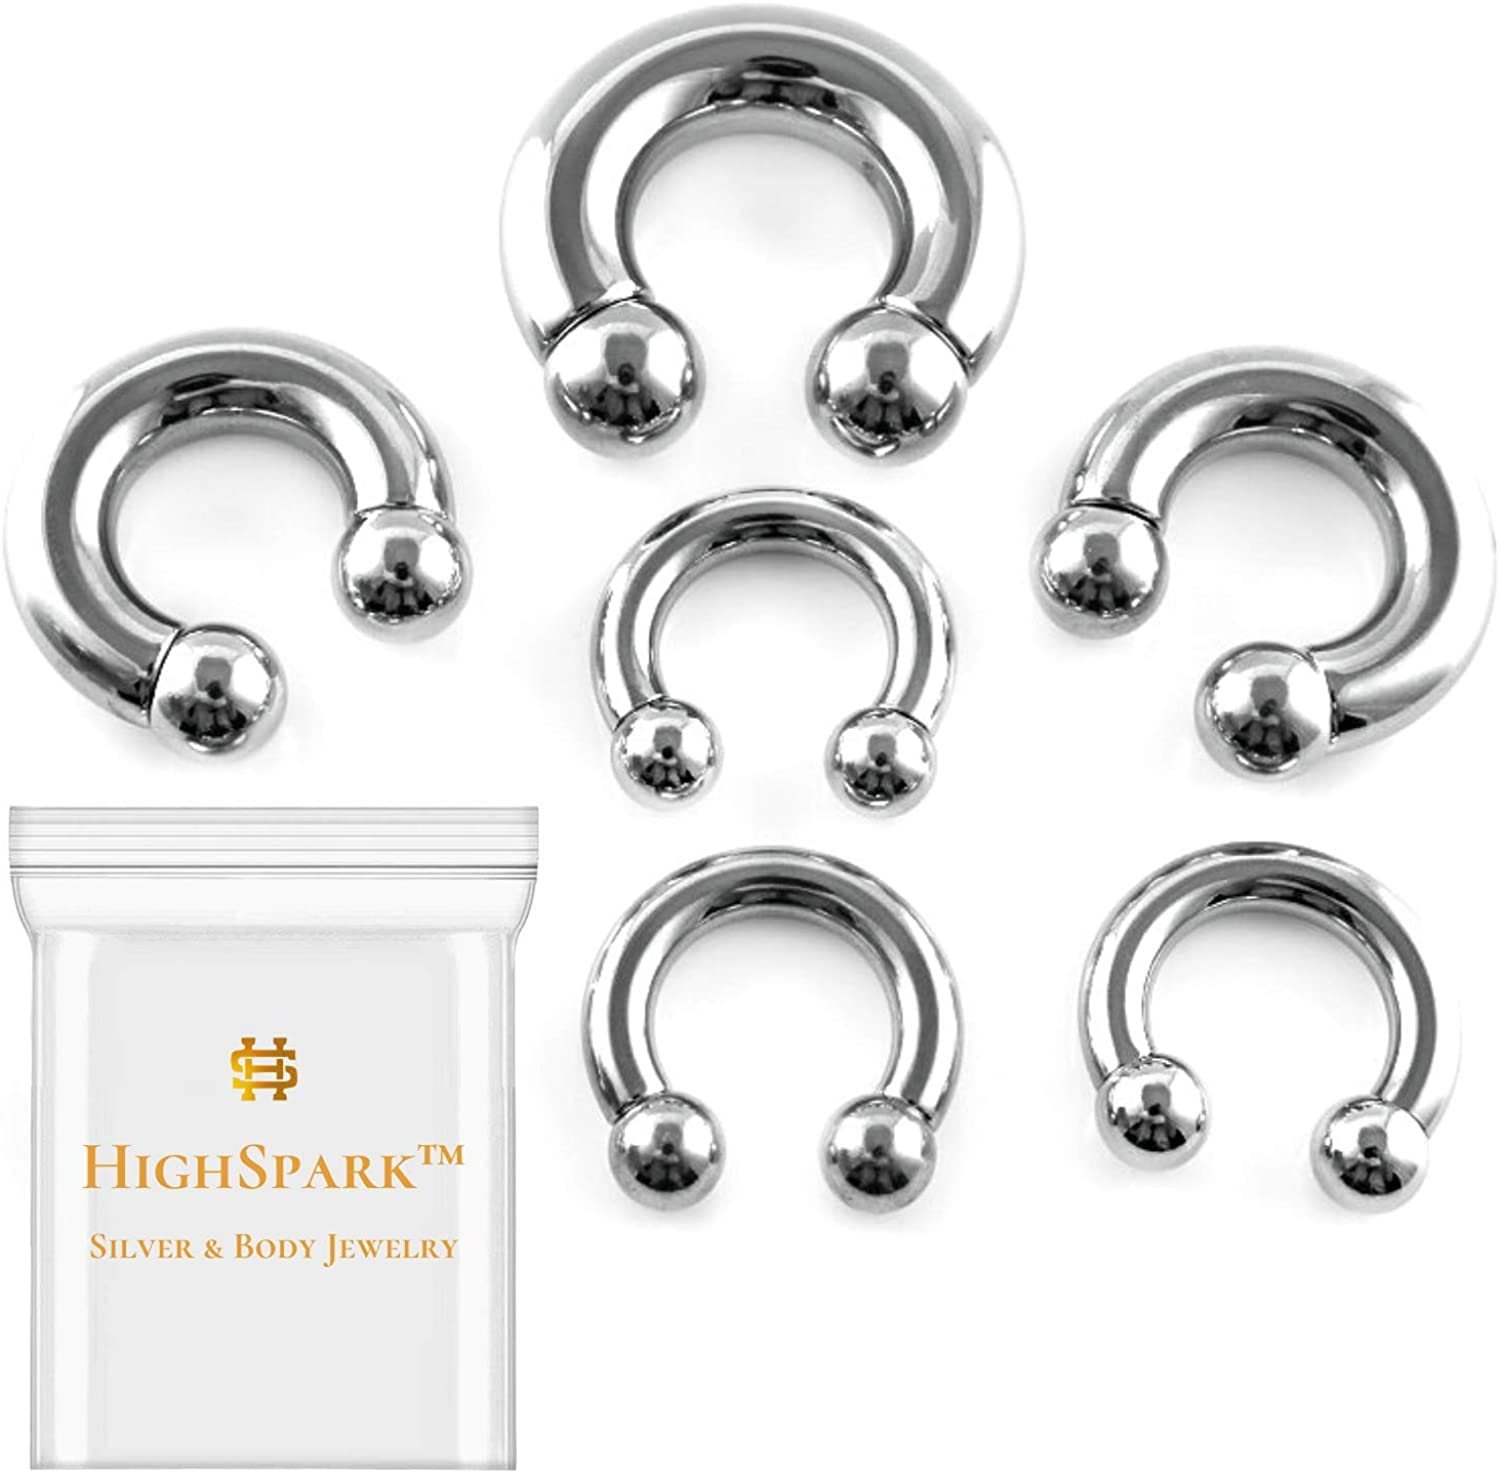 HighSpark Circular Barbell Horseshoe PA Ring | 316L Surgical Steel | 00G 0G 1G 2G 4G 6G 8G 10G 12G 14G 16G 18G | Many Sizes 6mm to 19mm